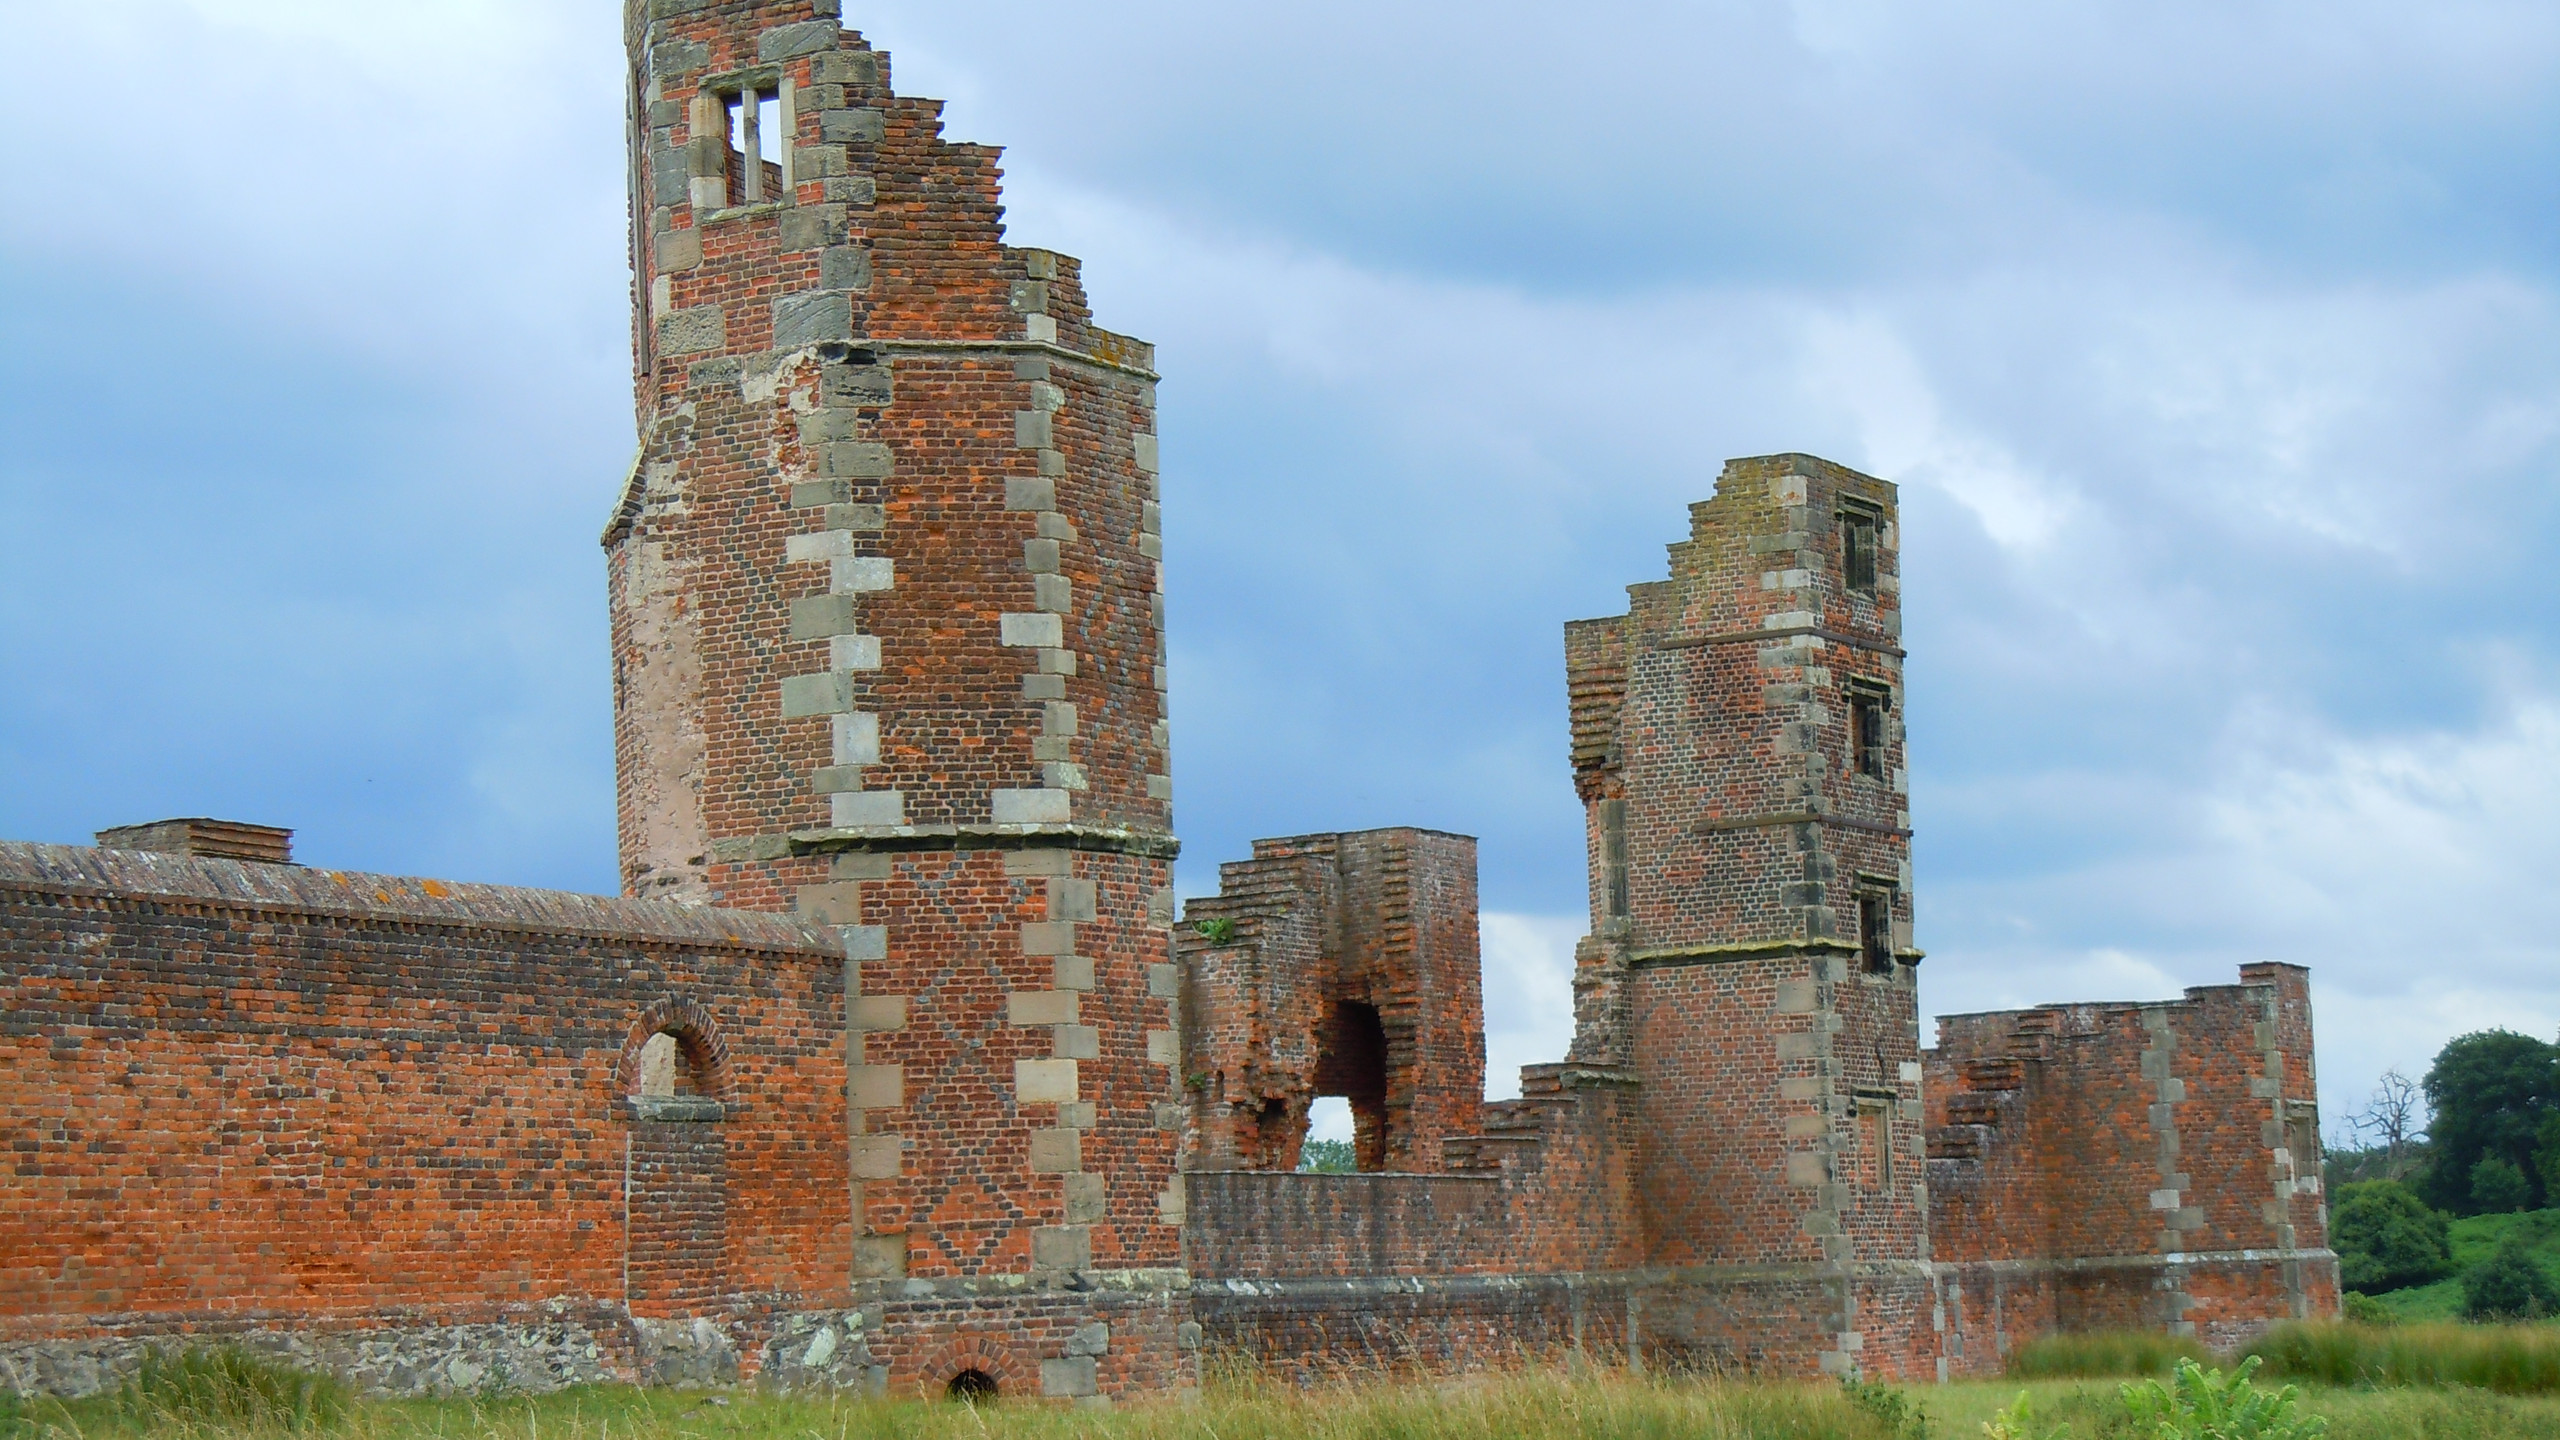 The remains of Bradgate House, home of the Grey family, Lady Jane Grey, Queen of England for nine days was born here.